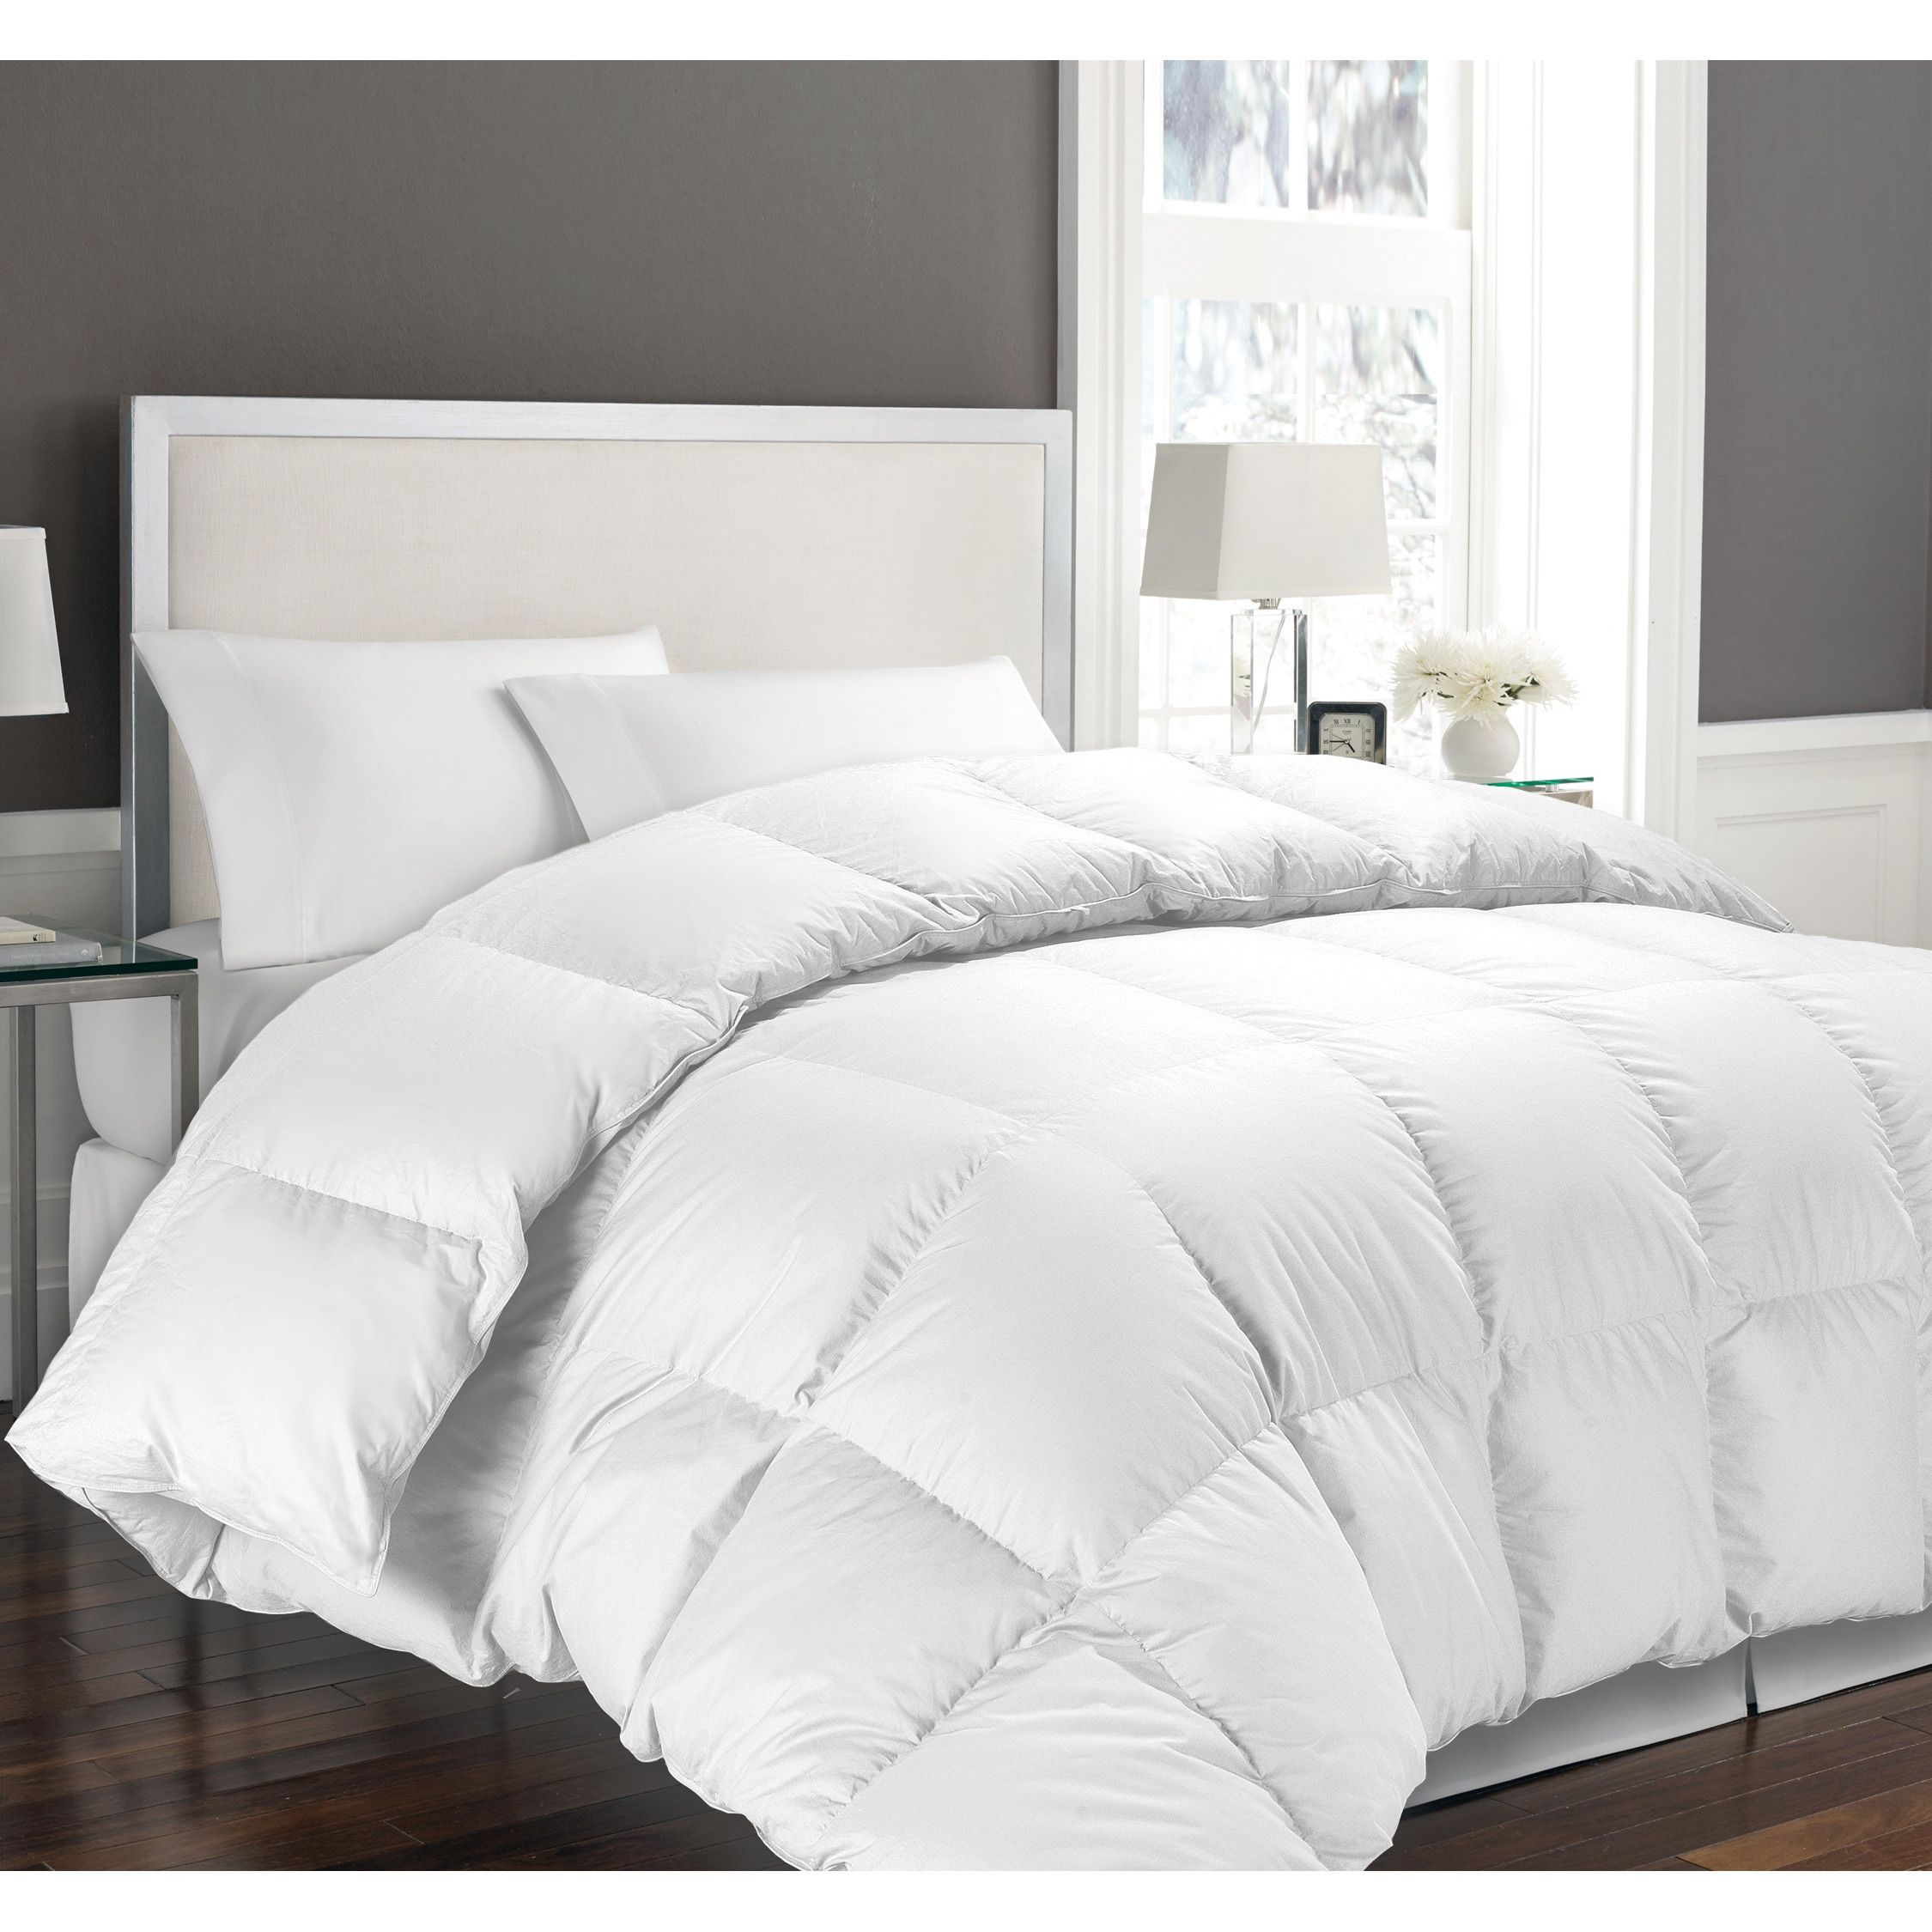 Hotel Grand Oversized Luxury 1000 Thread Count Egyptian Cotton